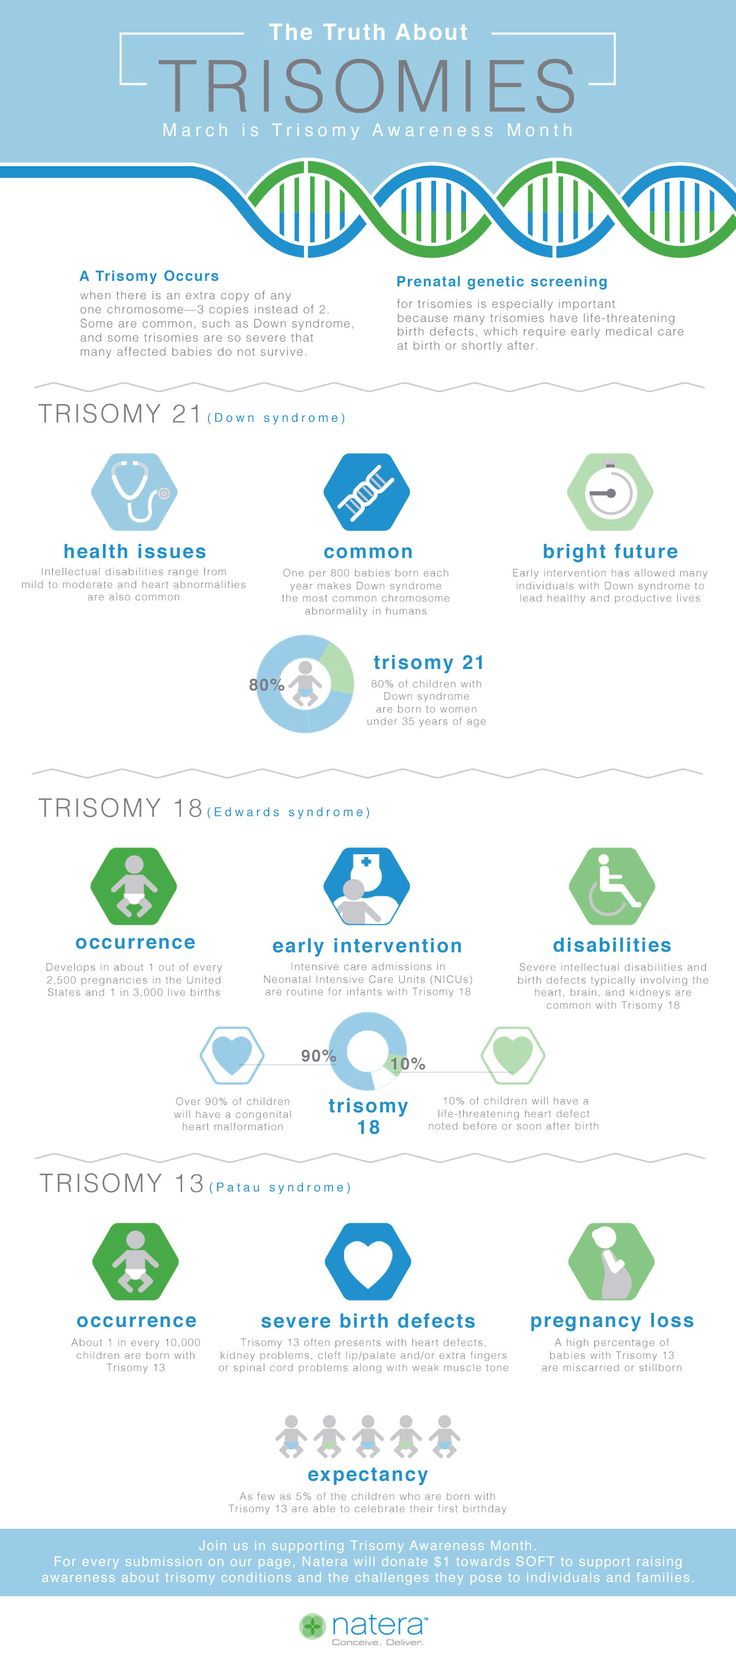 March is Trisomy Awareness Month. A trisomy occurs when there is an extra copy of any one chromosome—3 copies instead of 2. Some are common, such as Down syndrome, and some trisomies are so severe that affected babies often pass away before, or shortly after birth. Join us in educating parents about the important role prenatal genetic screening plays for trisomies which may have life-threatening birth defects that require additional testing during a pregnancy or early treatment at birth.